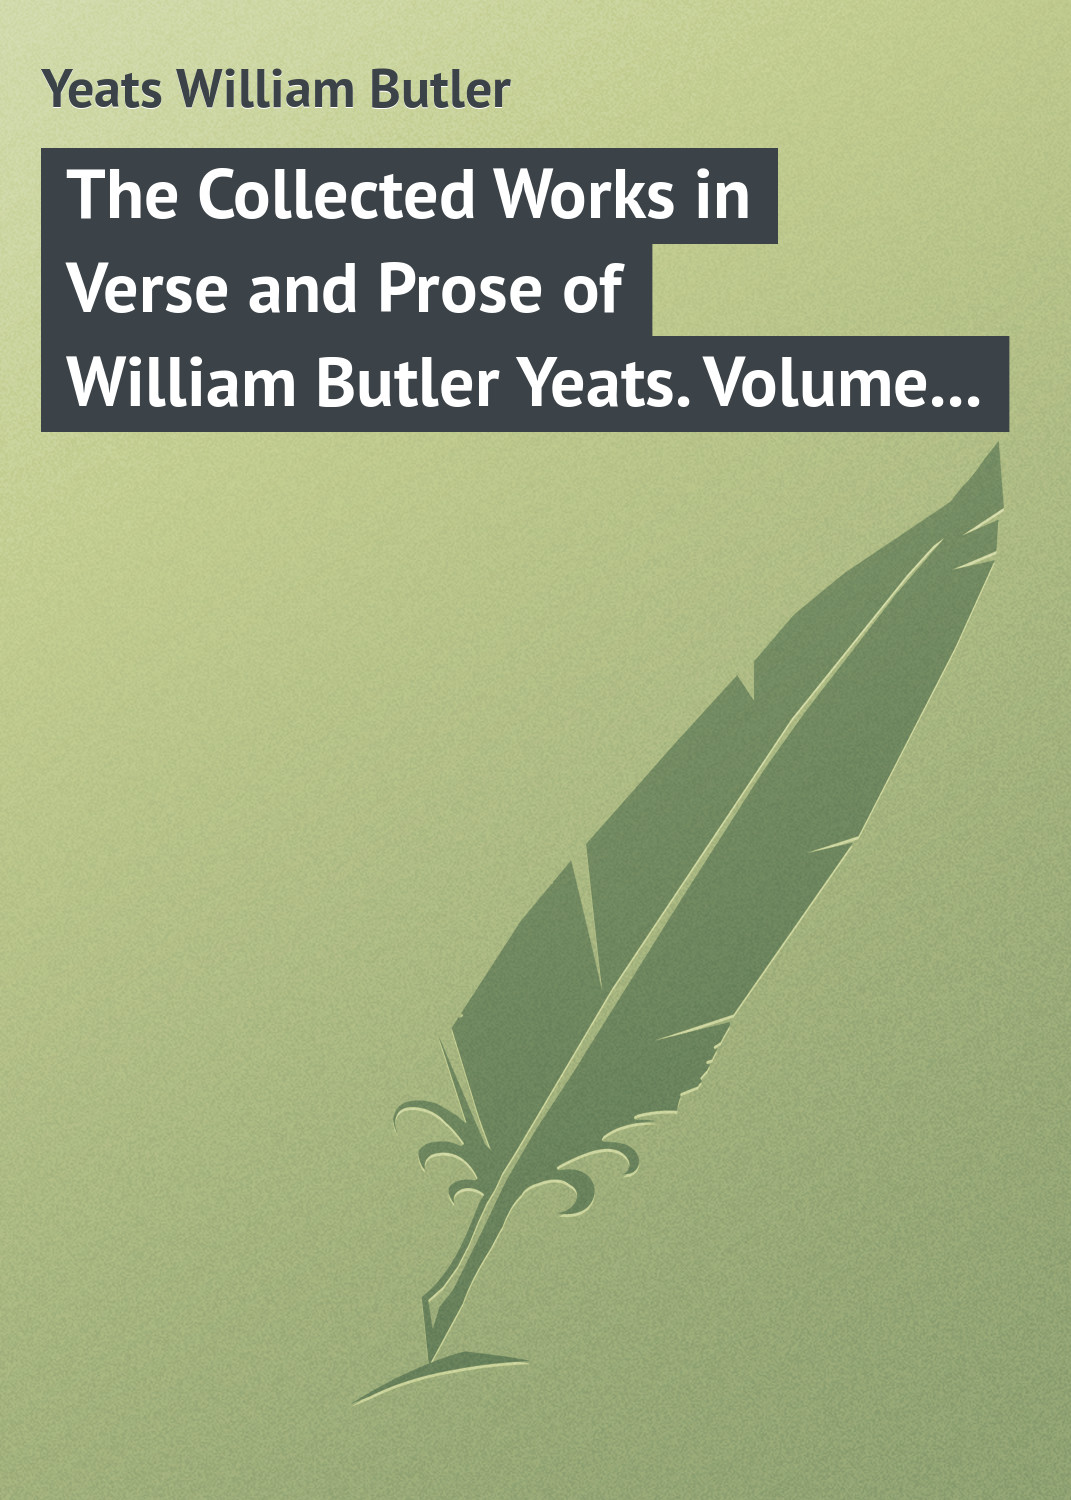 William Butler Yeats The Collected Works in Verse and Prose of William Butler Yeats. Volume 8 of 8. Discoveries. Edmund Spenser. Poetry and Tradition; and Other Essays. Bibliography nuevo prisma fusion a1 a2 curso de espanol para extranjeros cd